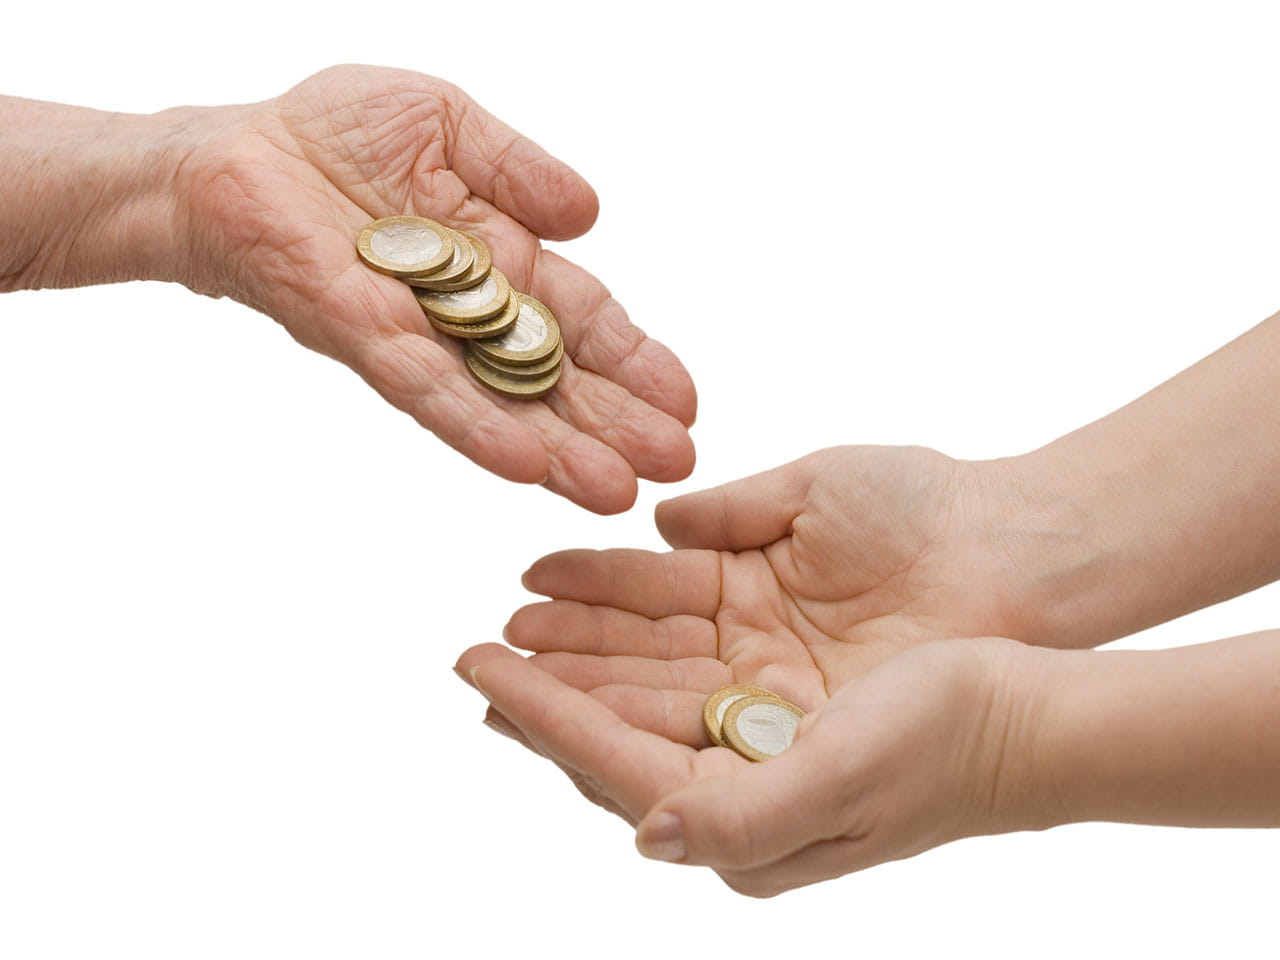 Hand giving money to another set of hands